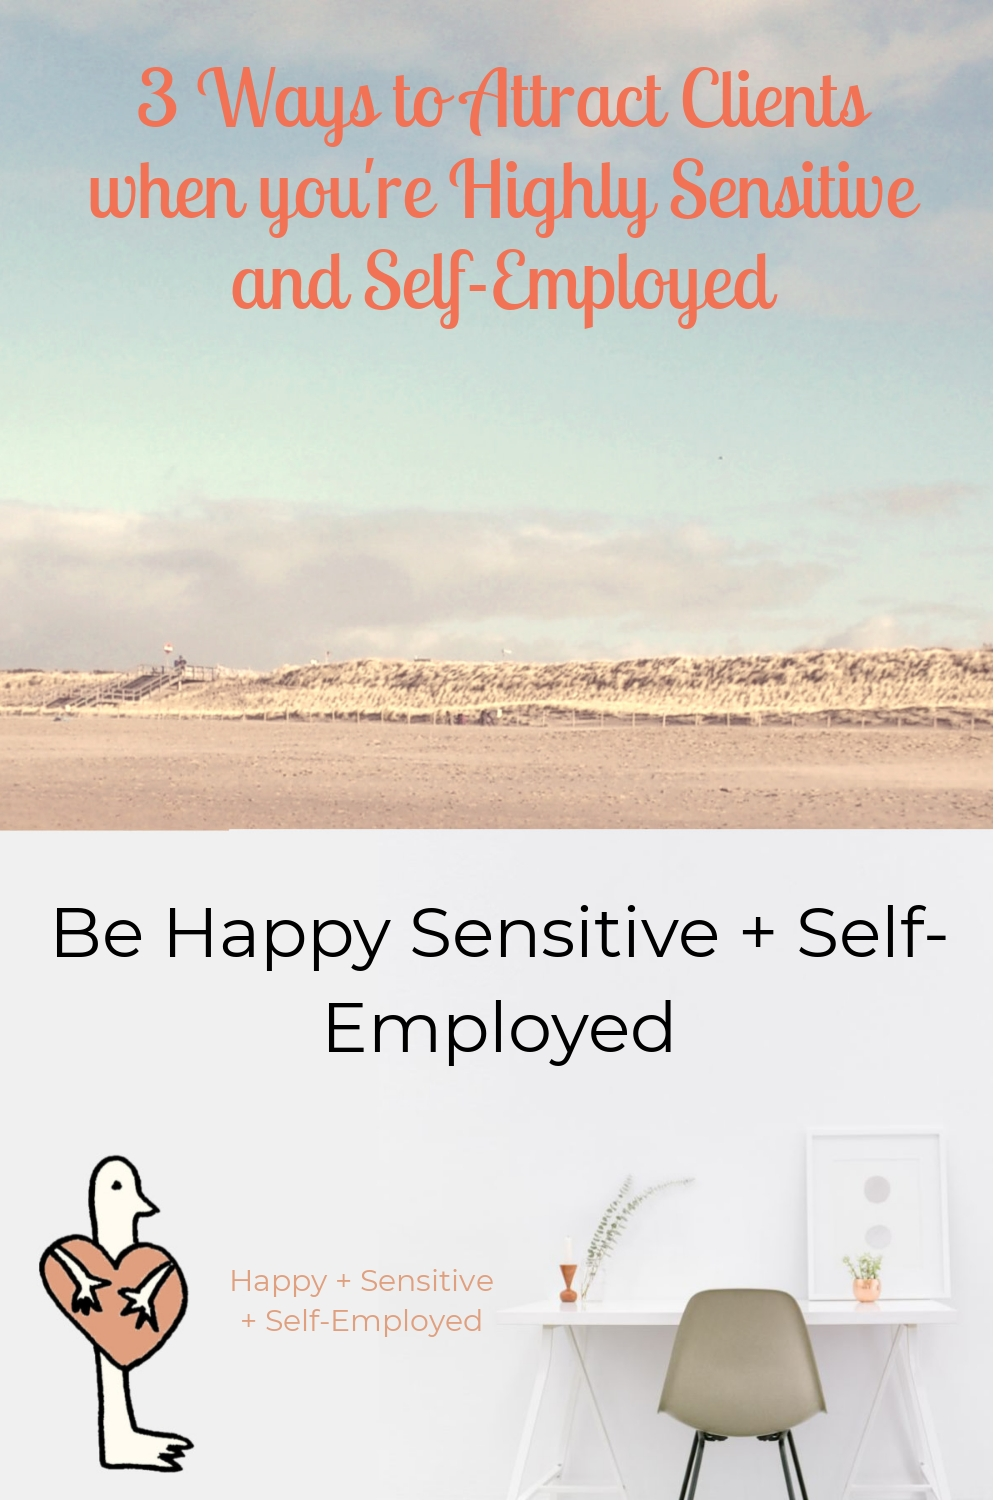 3 Ways to Attract Clients when you're Highly Sensitive and Self-Employed